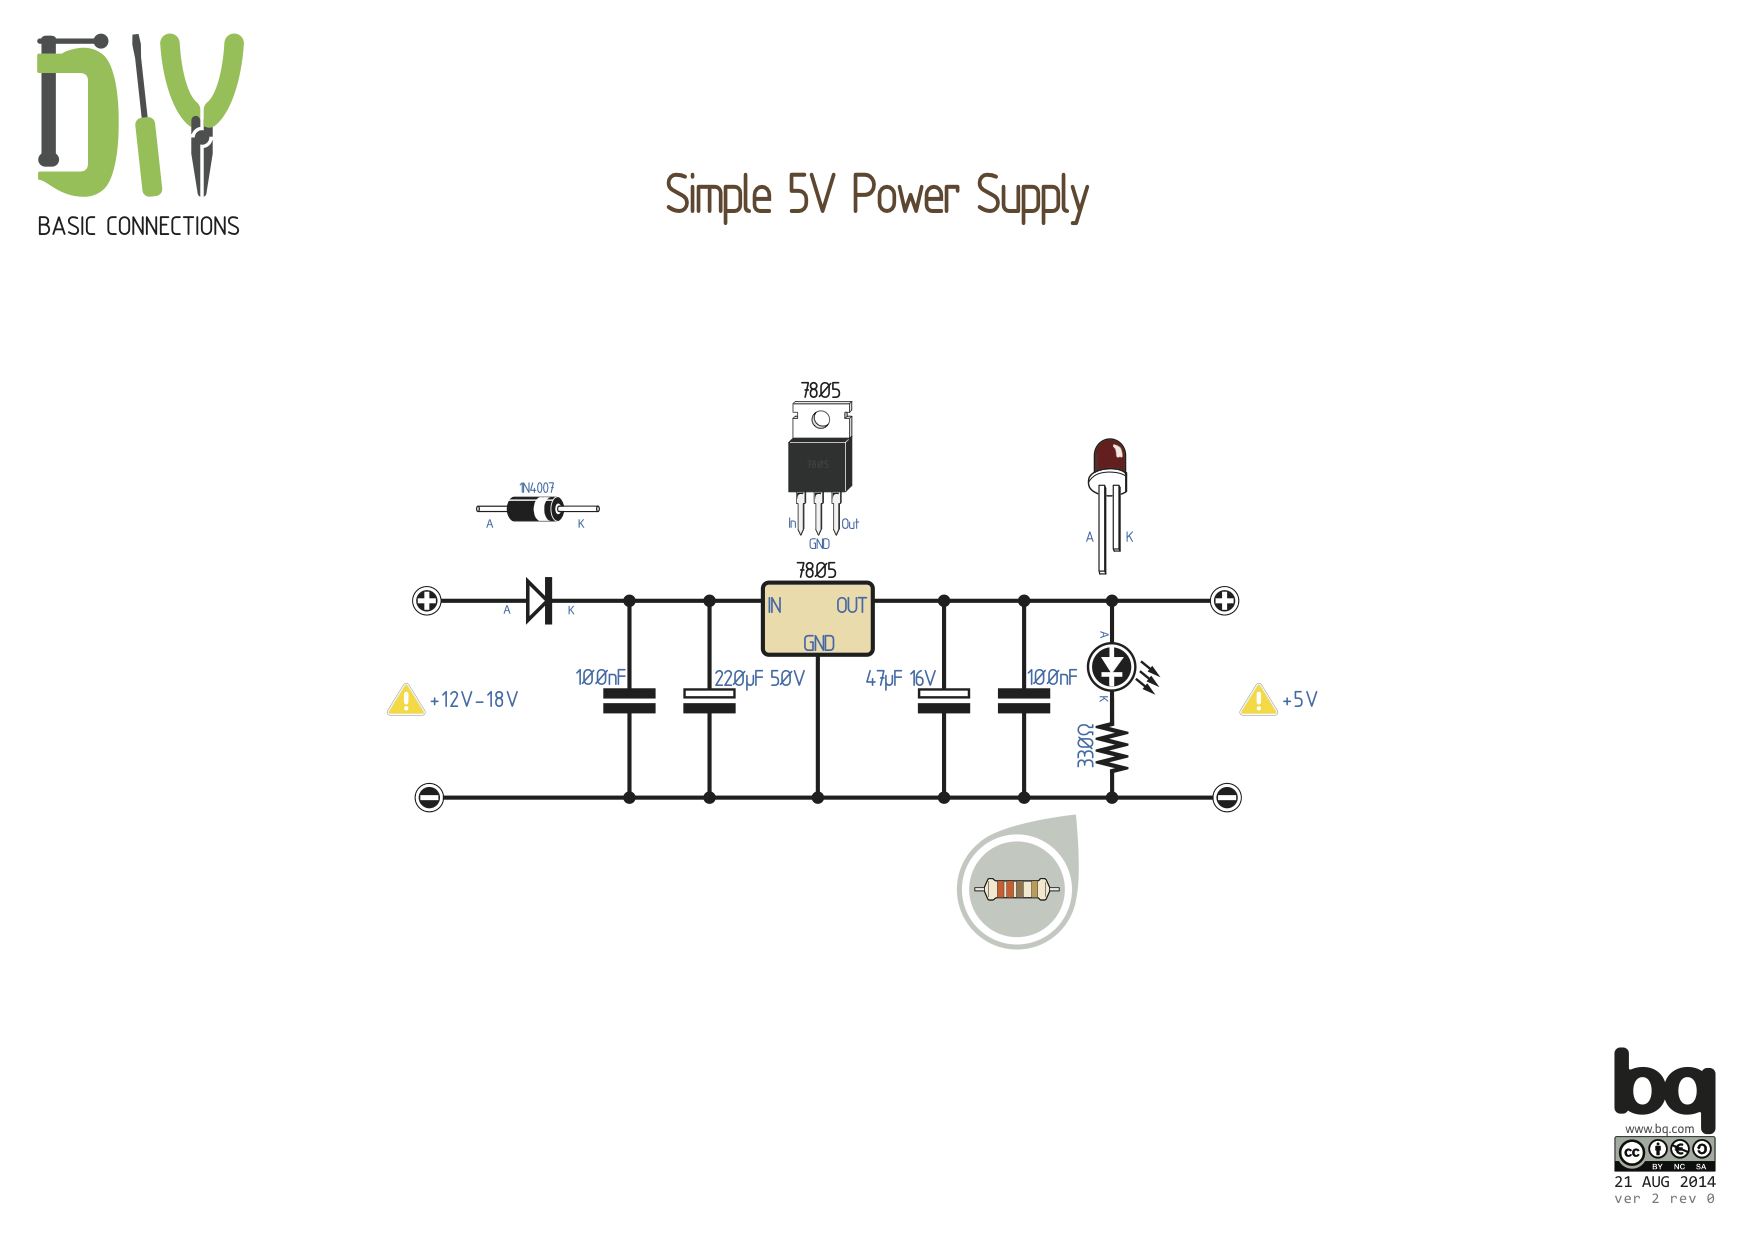 Simple 5V Power Supply | Datasheets / Pins / Connections / Circuits